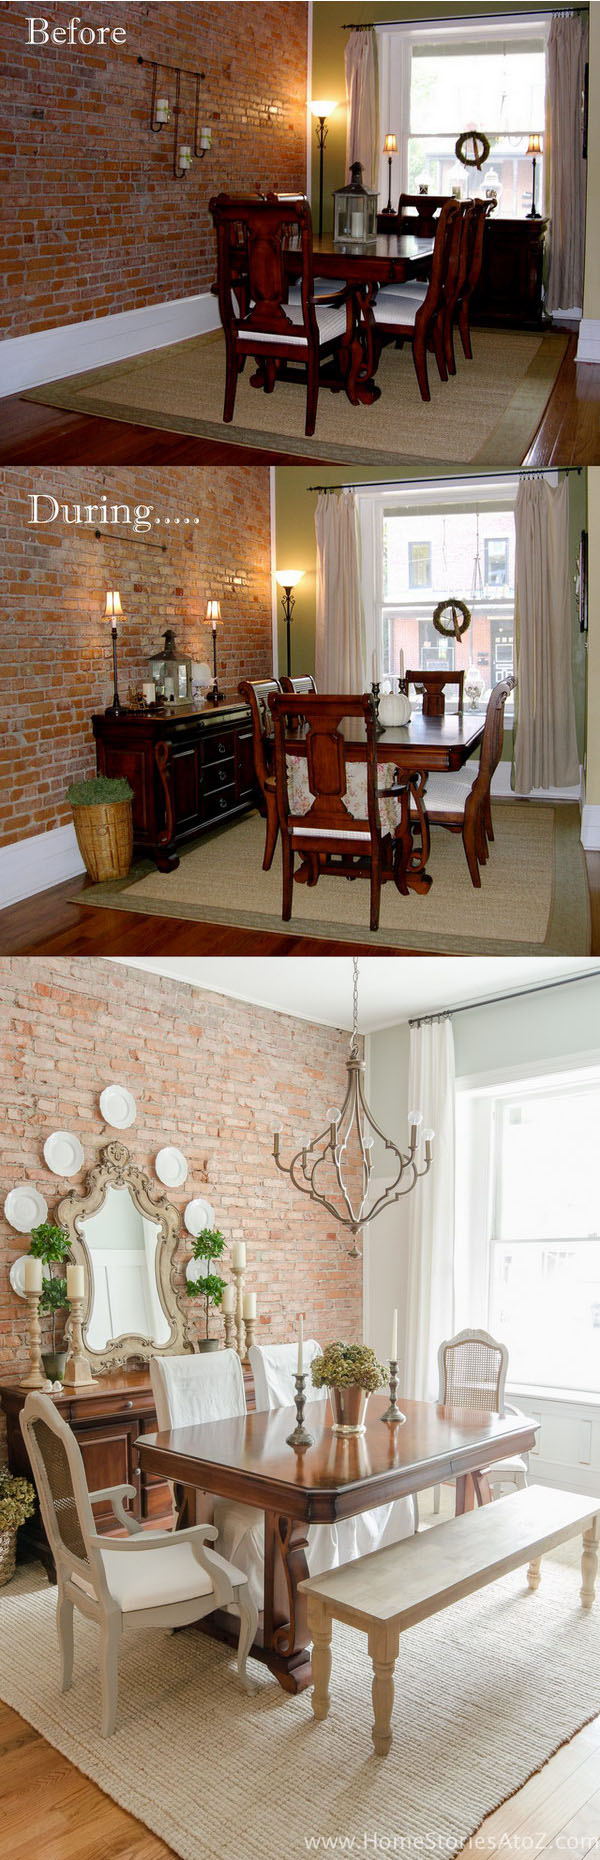 29-30-dining-room-makeover-ideas-tutorials